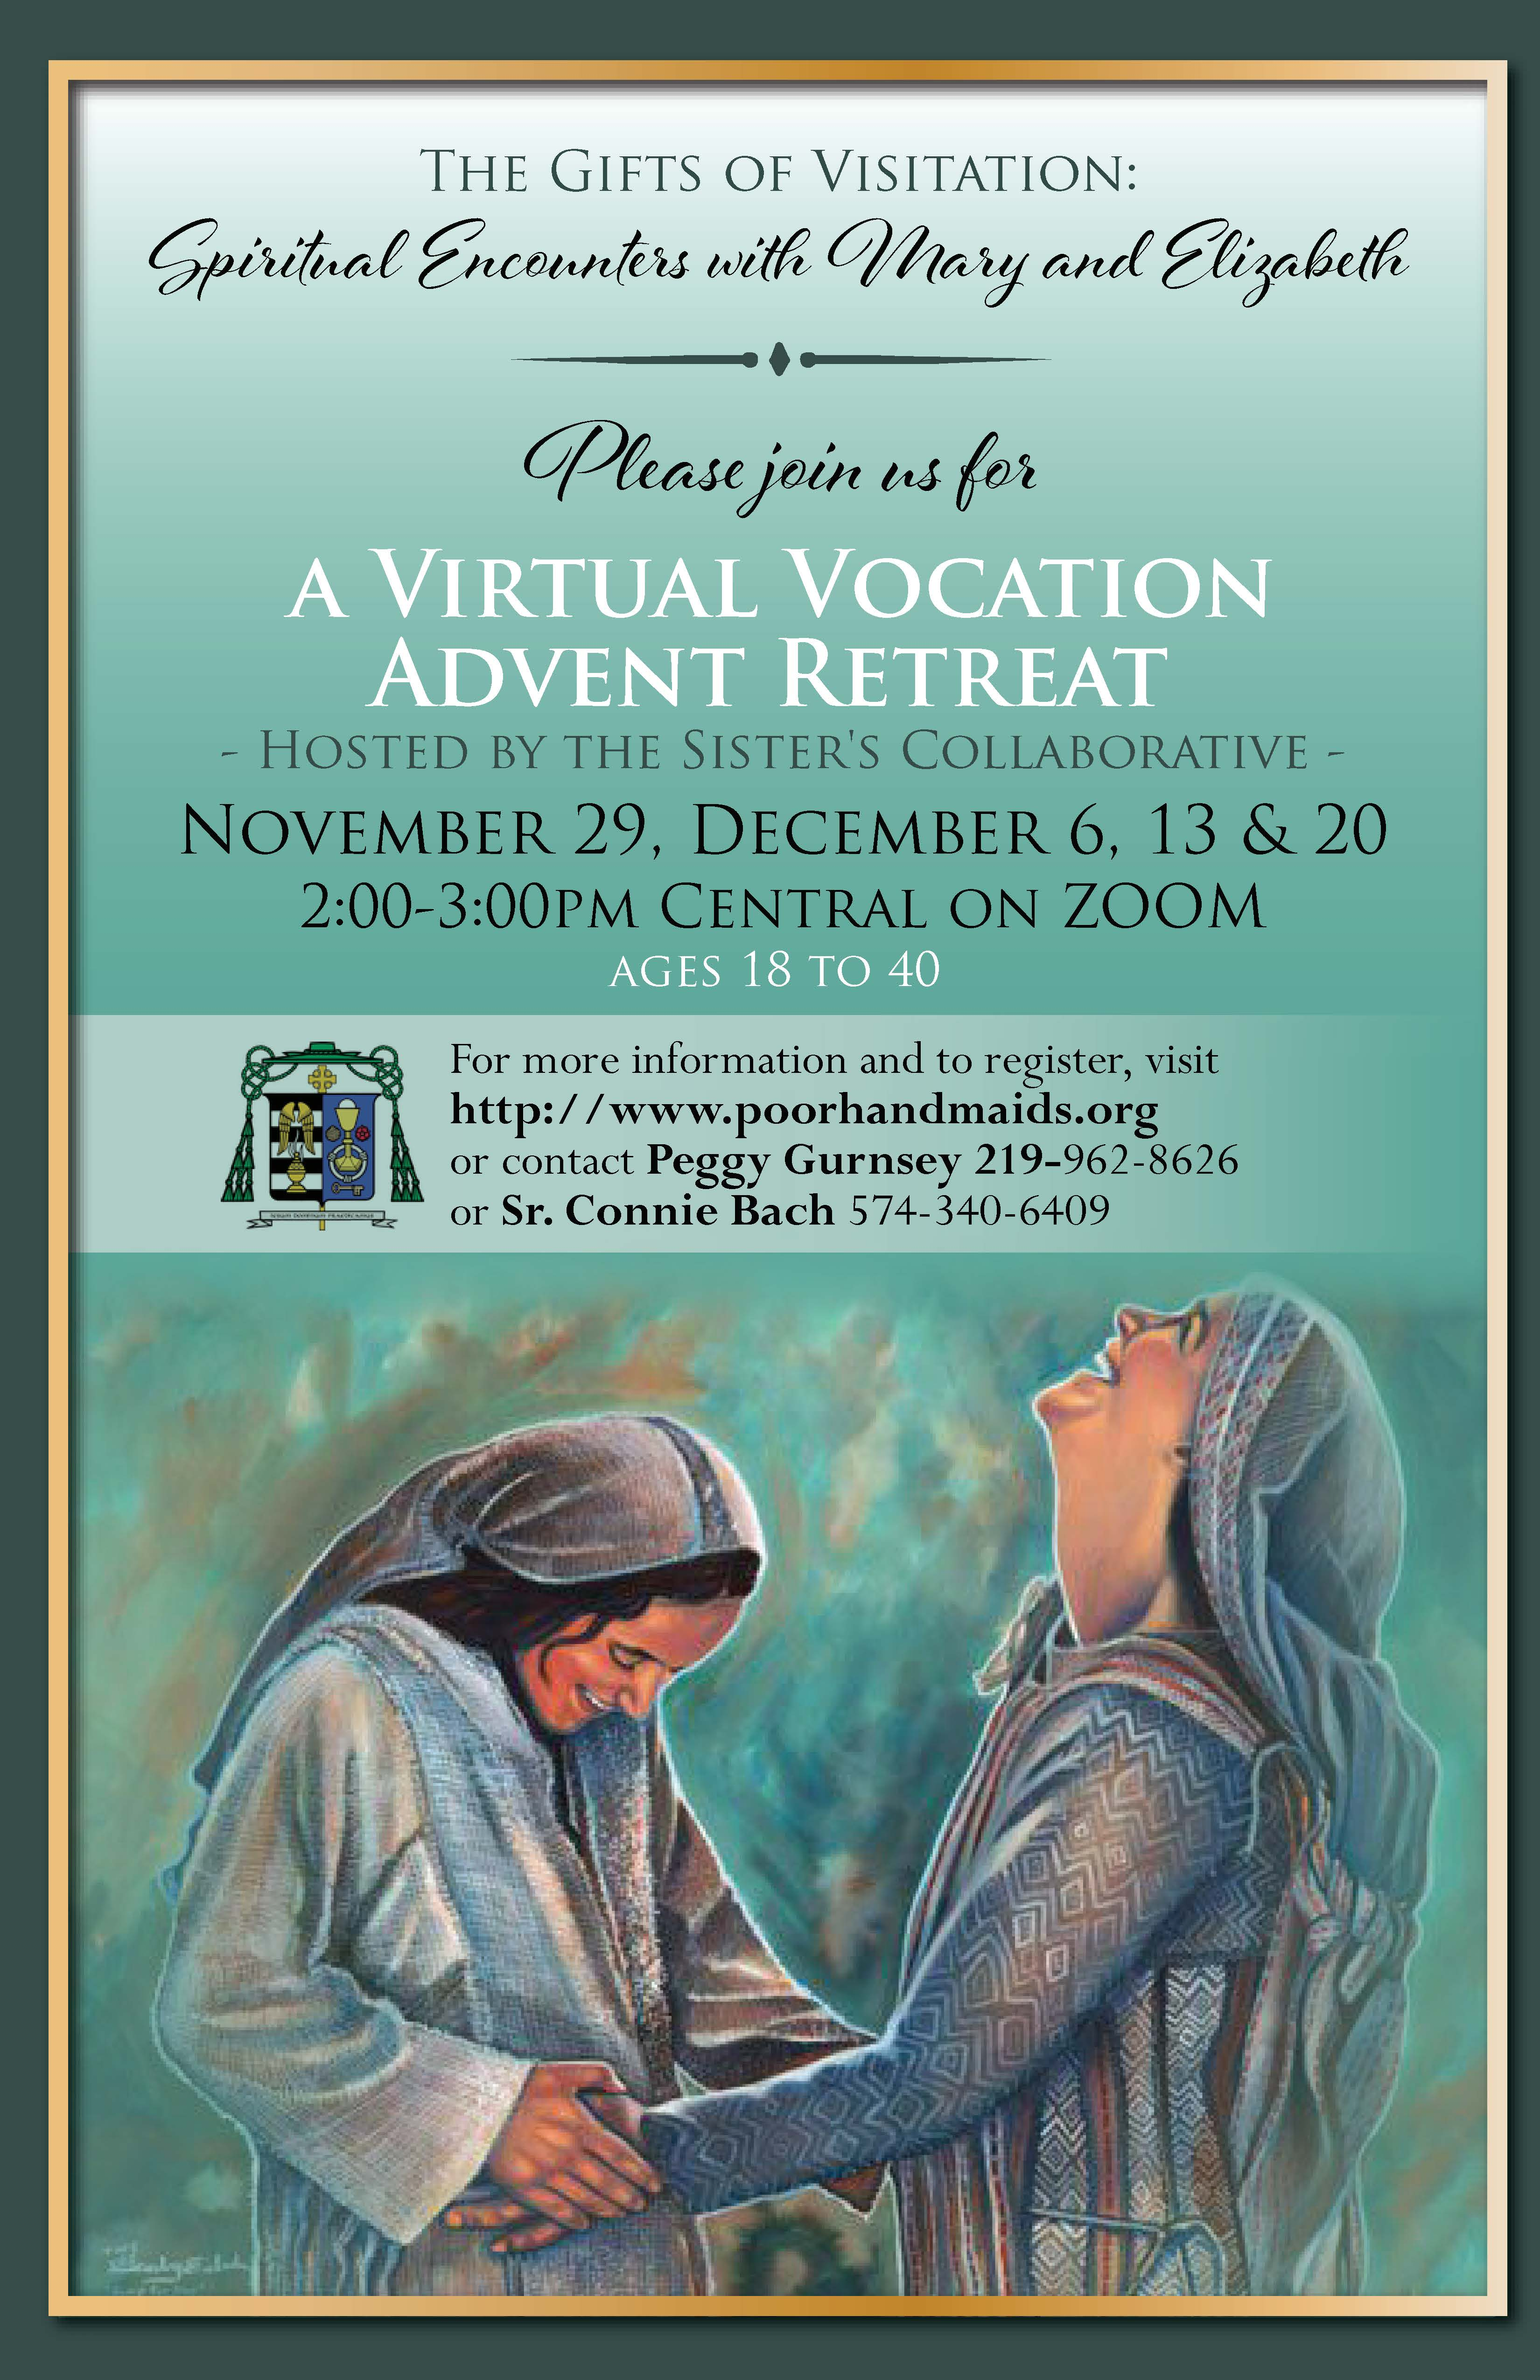 Vocation Advent Retreat